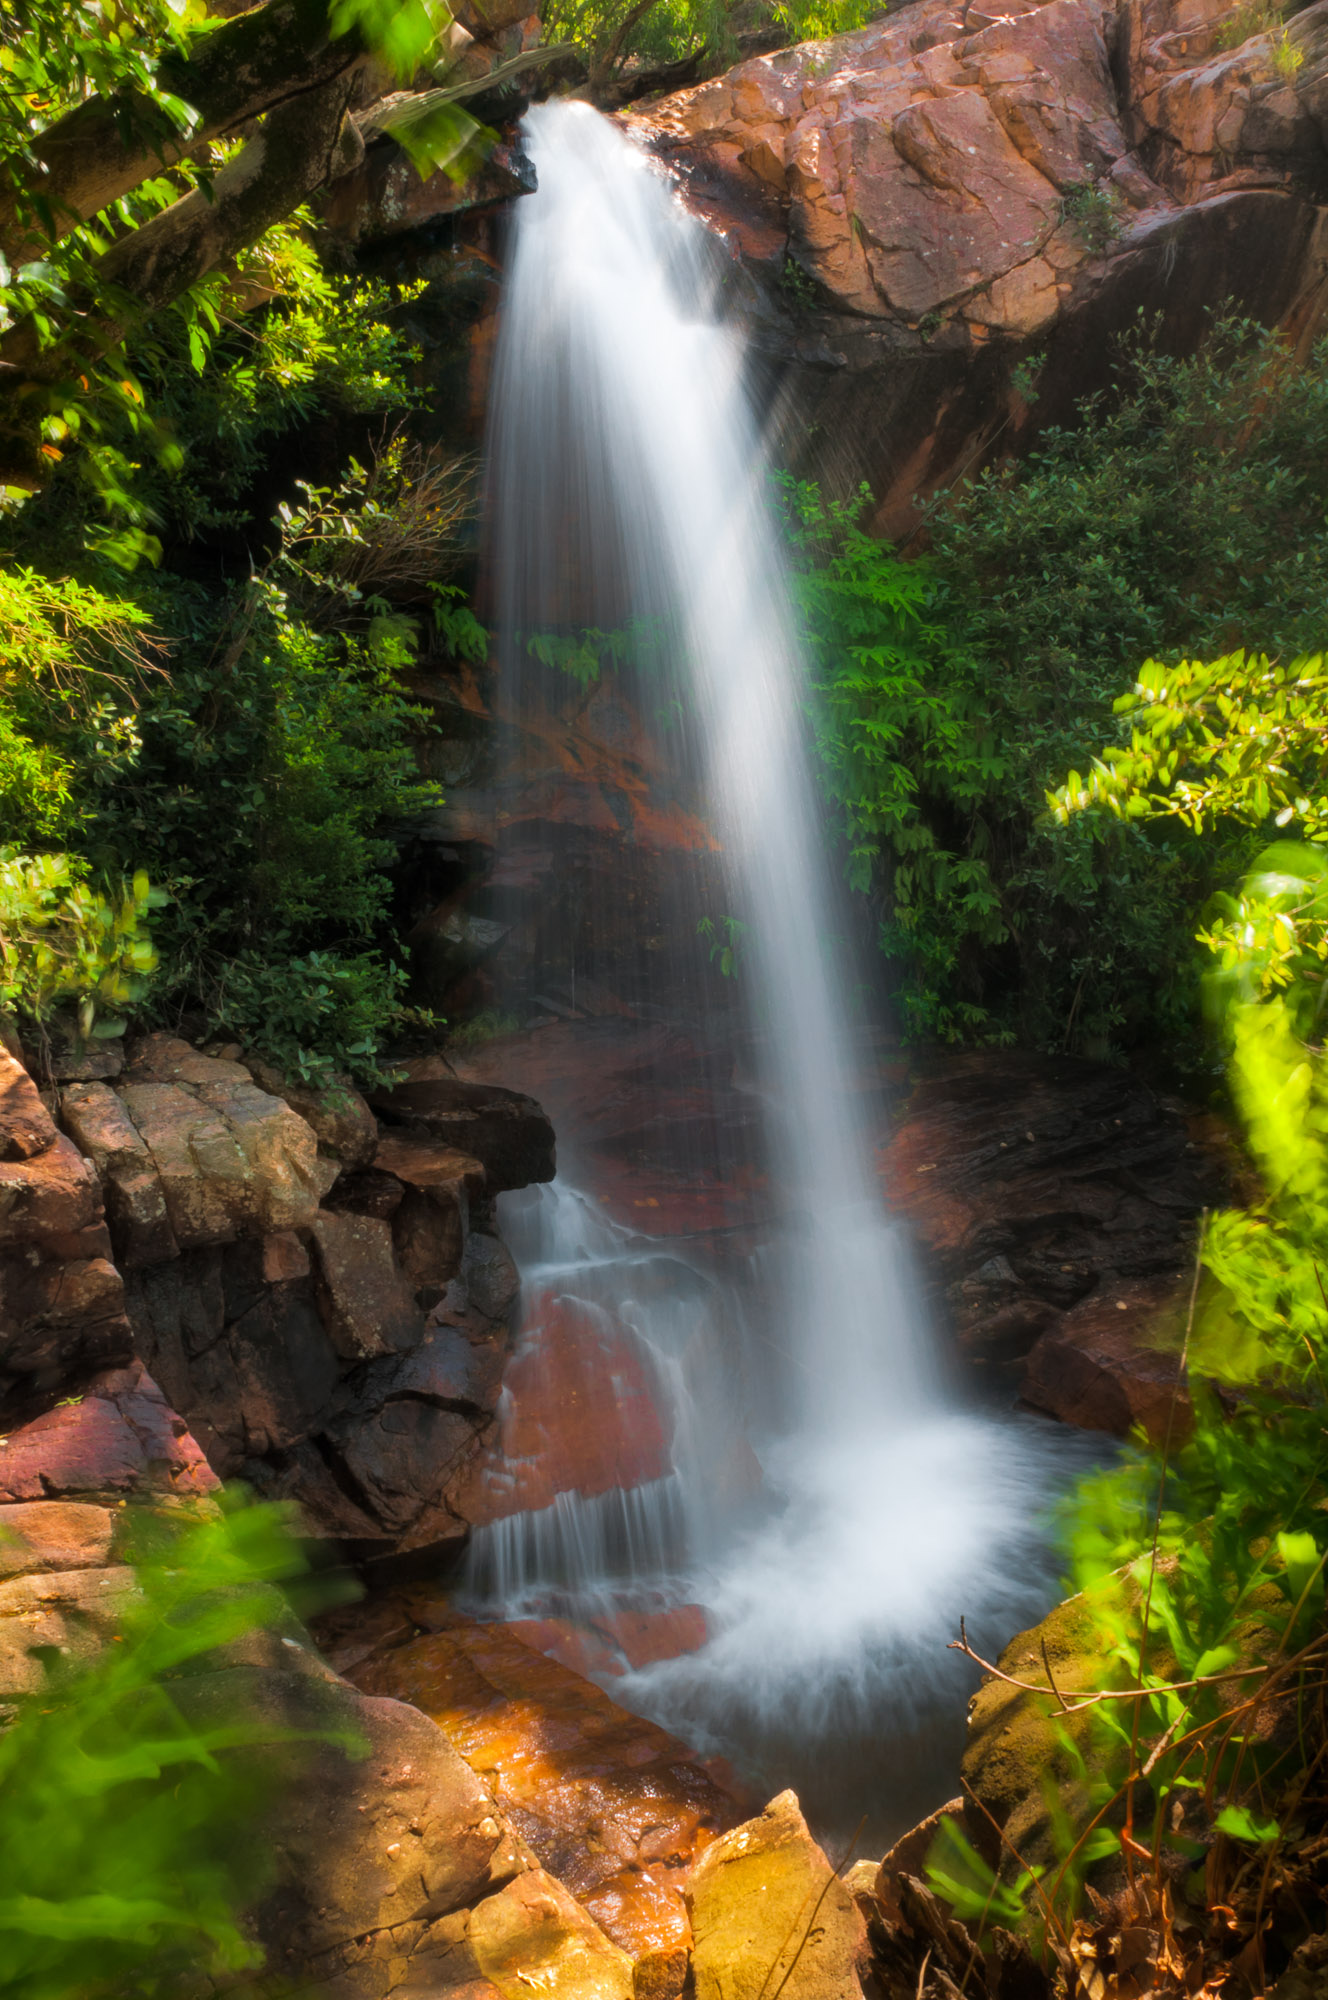 Monsoon-fed Waterfall, Kakadu National Park, Northern Territory, Australia